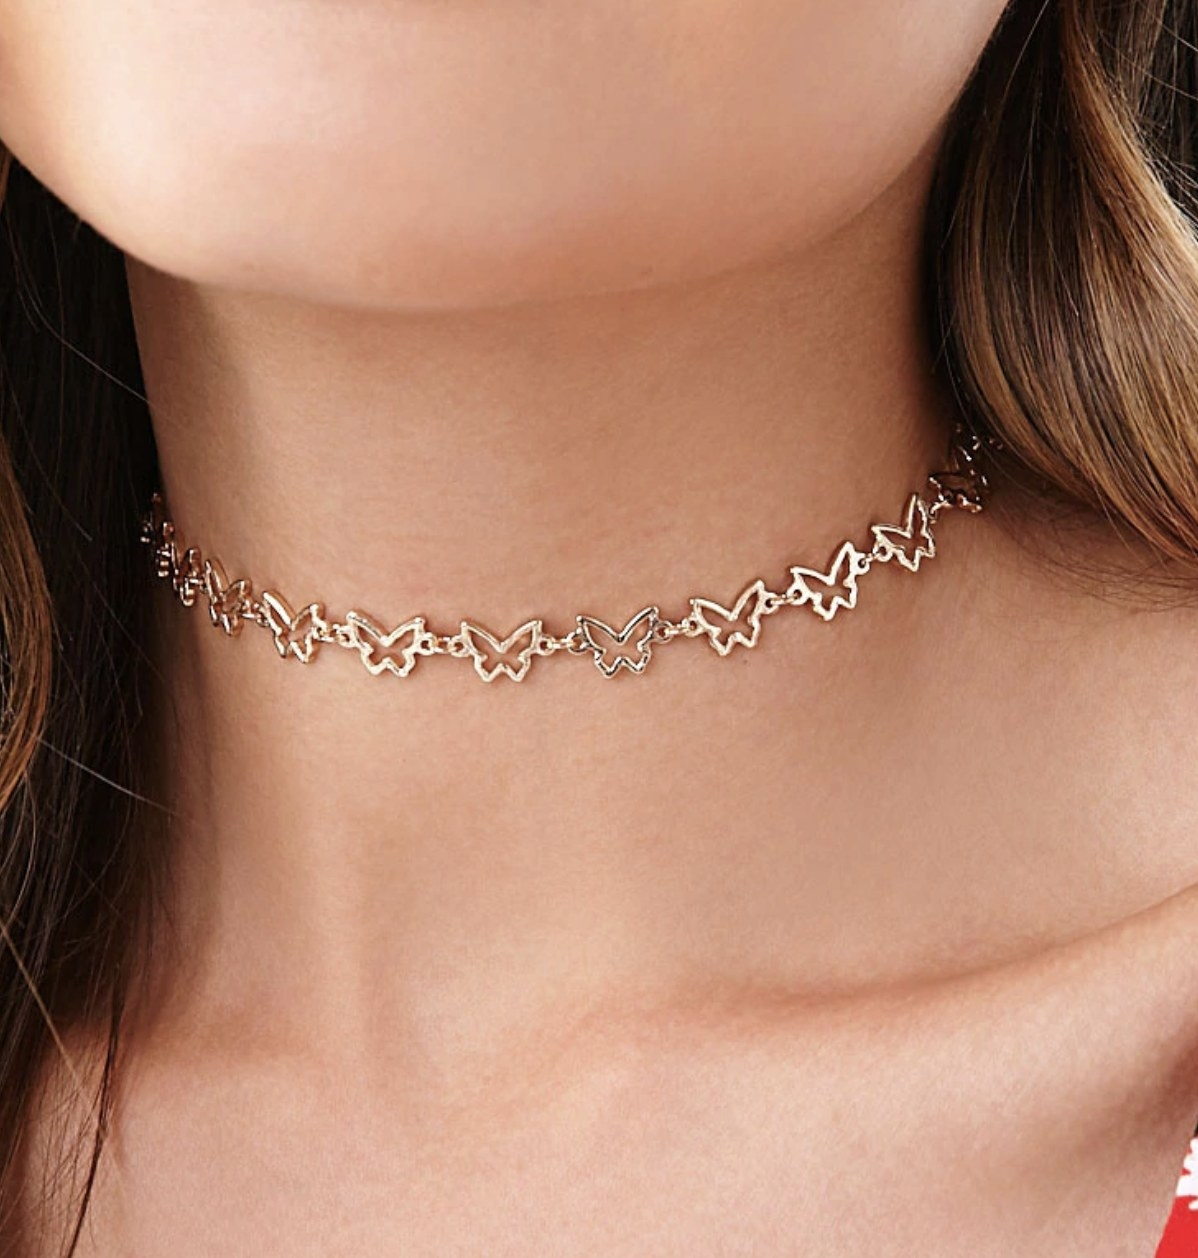 Model is wearing a gold choker necklace with a repeated butterfly pattern